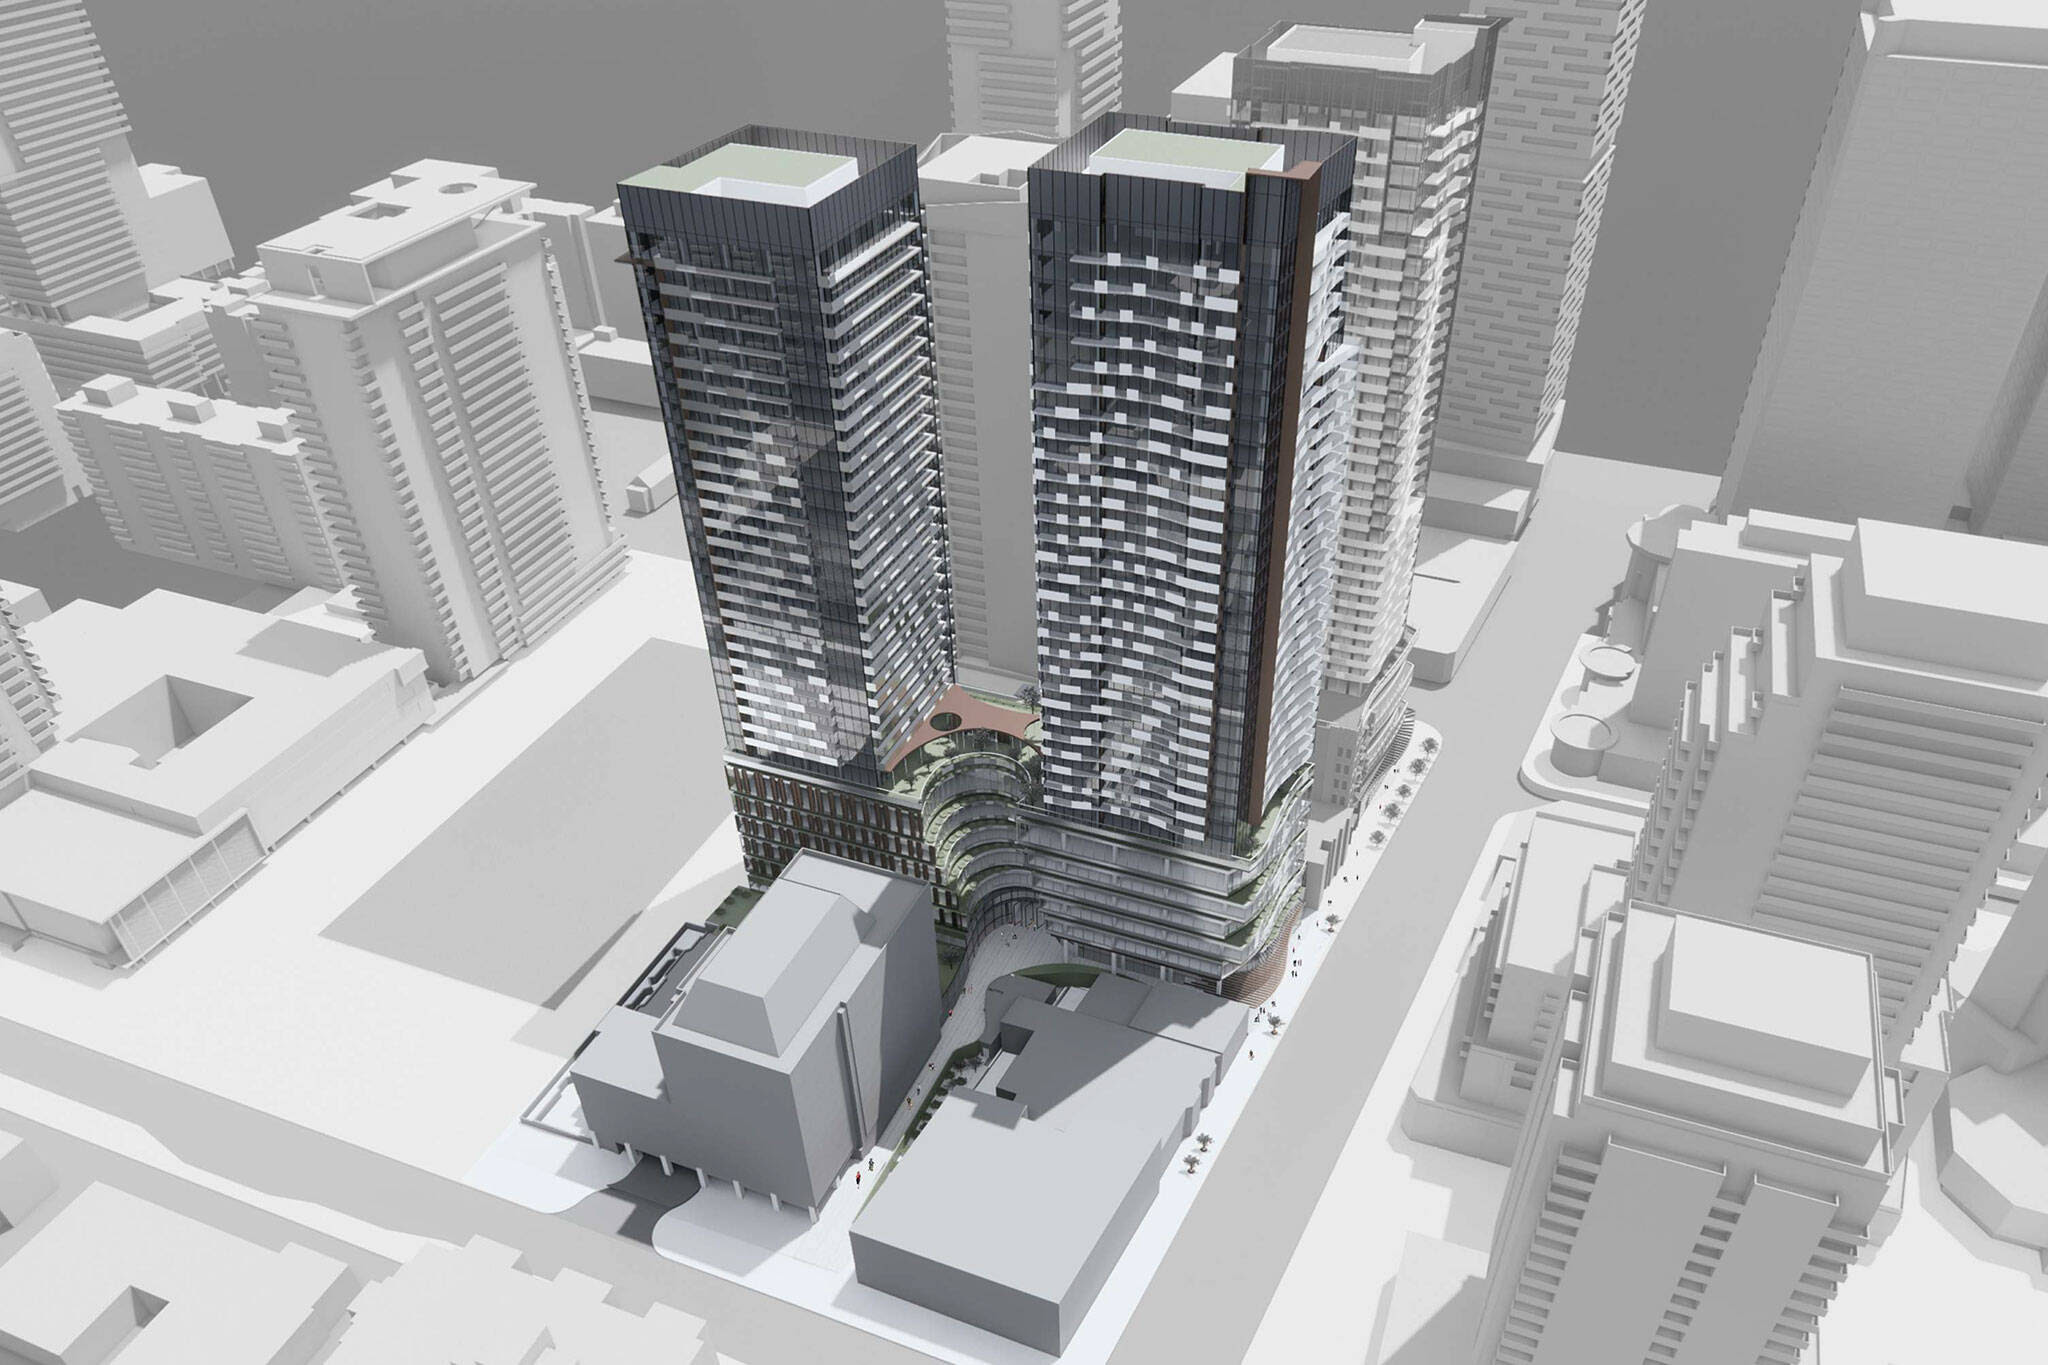 Even more condos on tap for an already packed area of Toronto